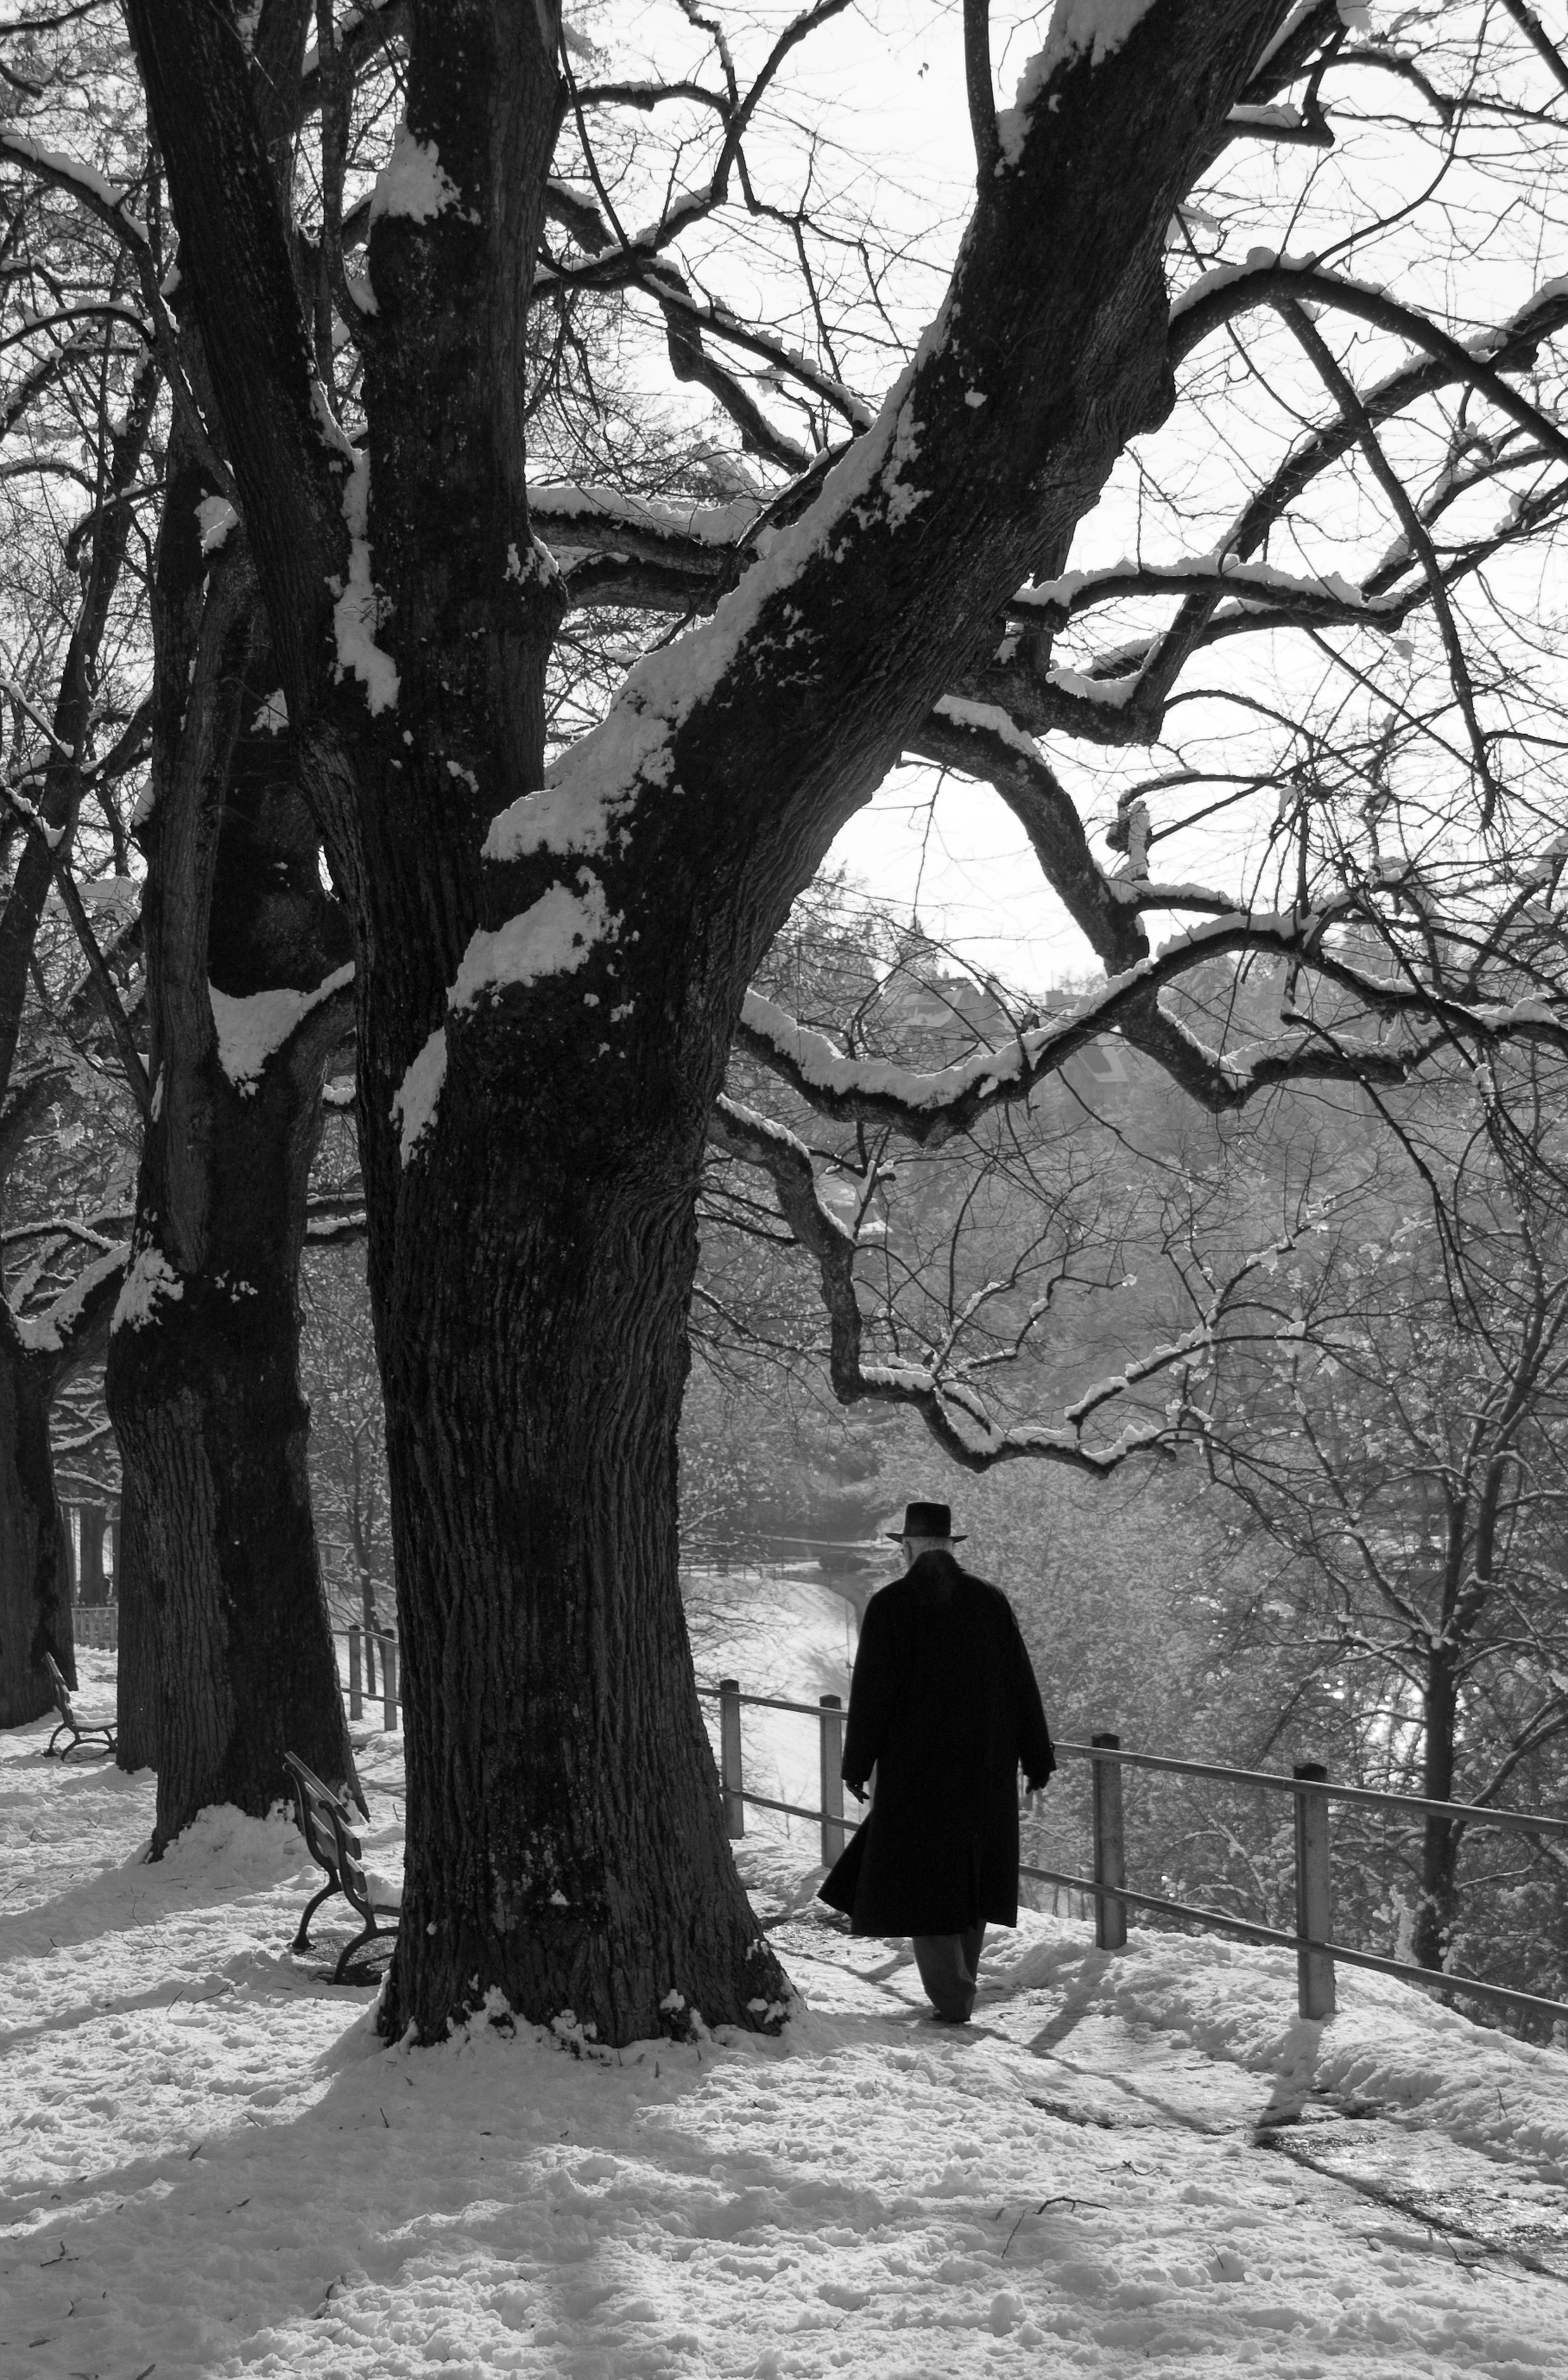 A man walks in the winter snow. Bern, Switzerland.